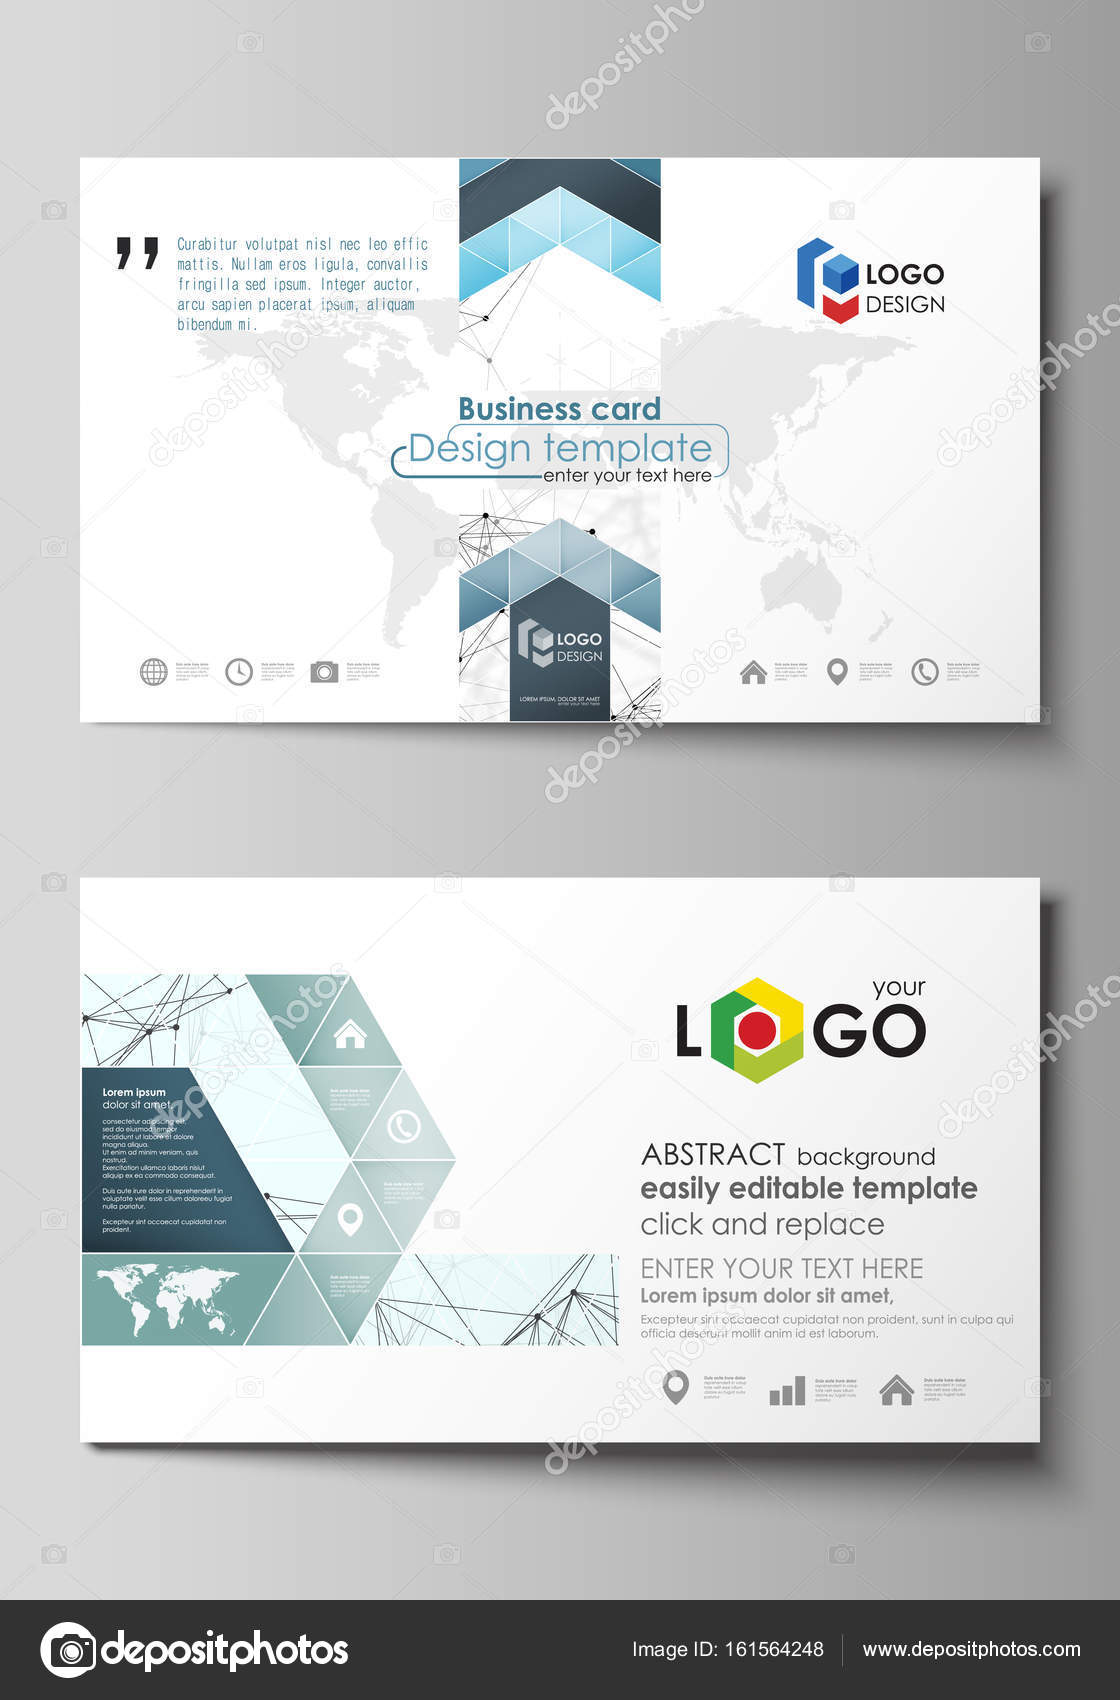 Business card templates easy editable layout abstract vector business card templates easy editable layout abstract vector design template chemistry pattern connecting lines and dots molecule structure on white wajeb Images